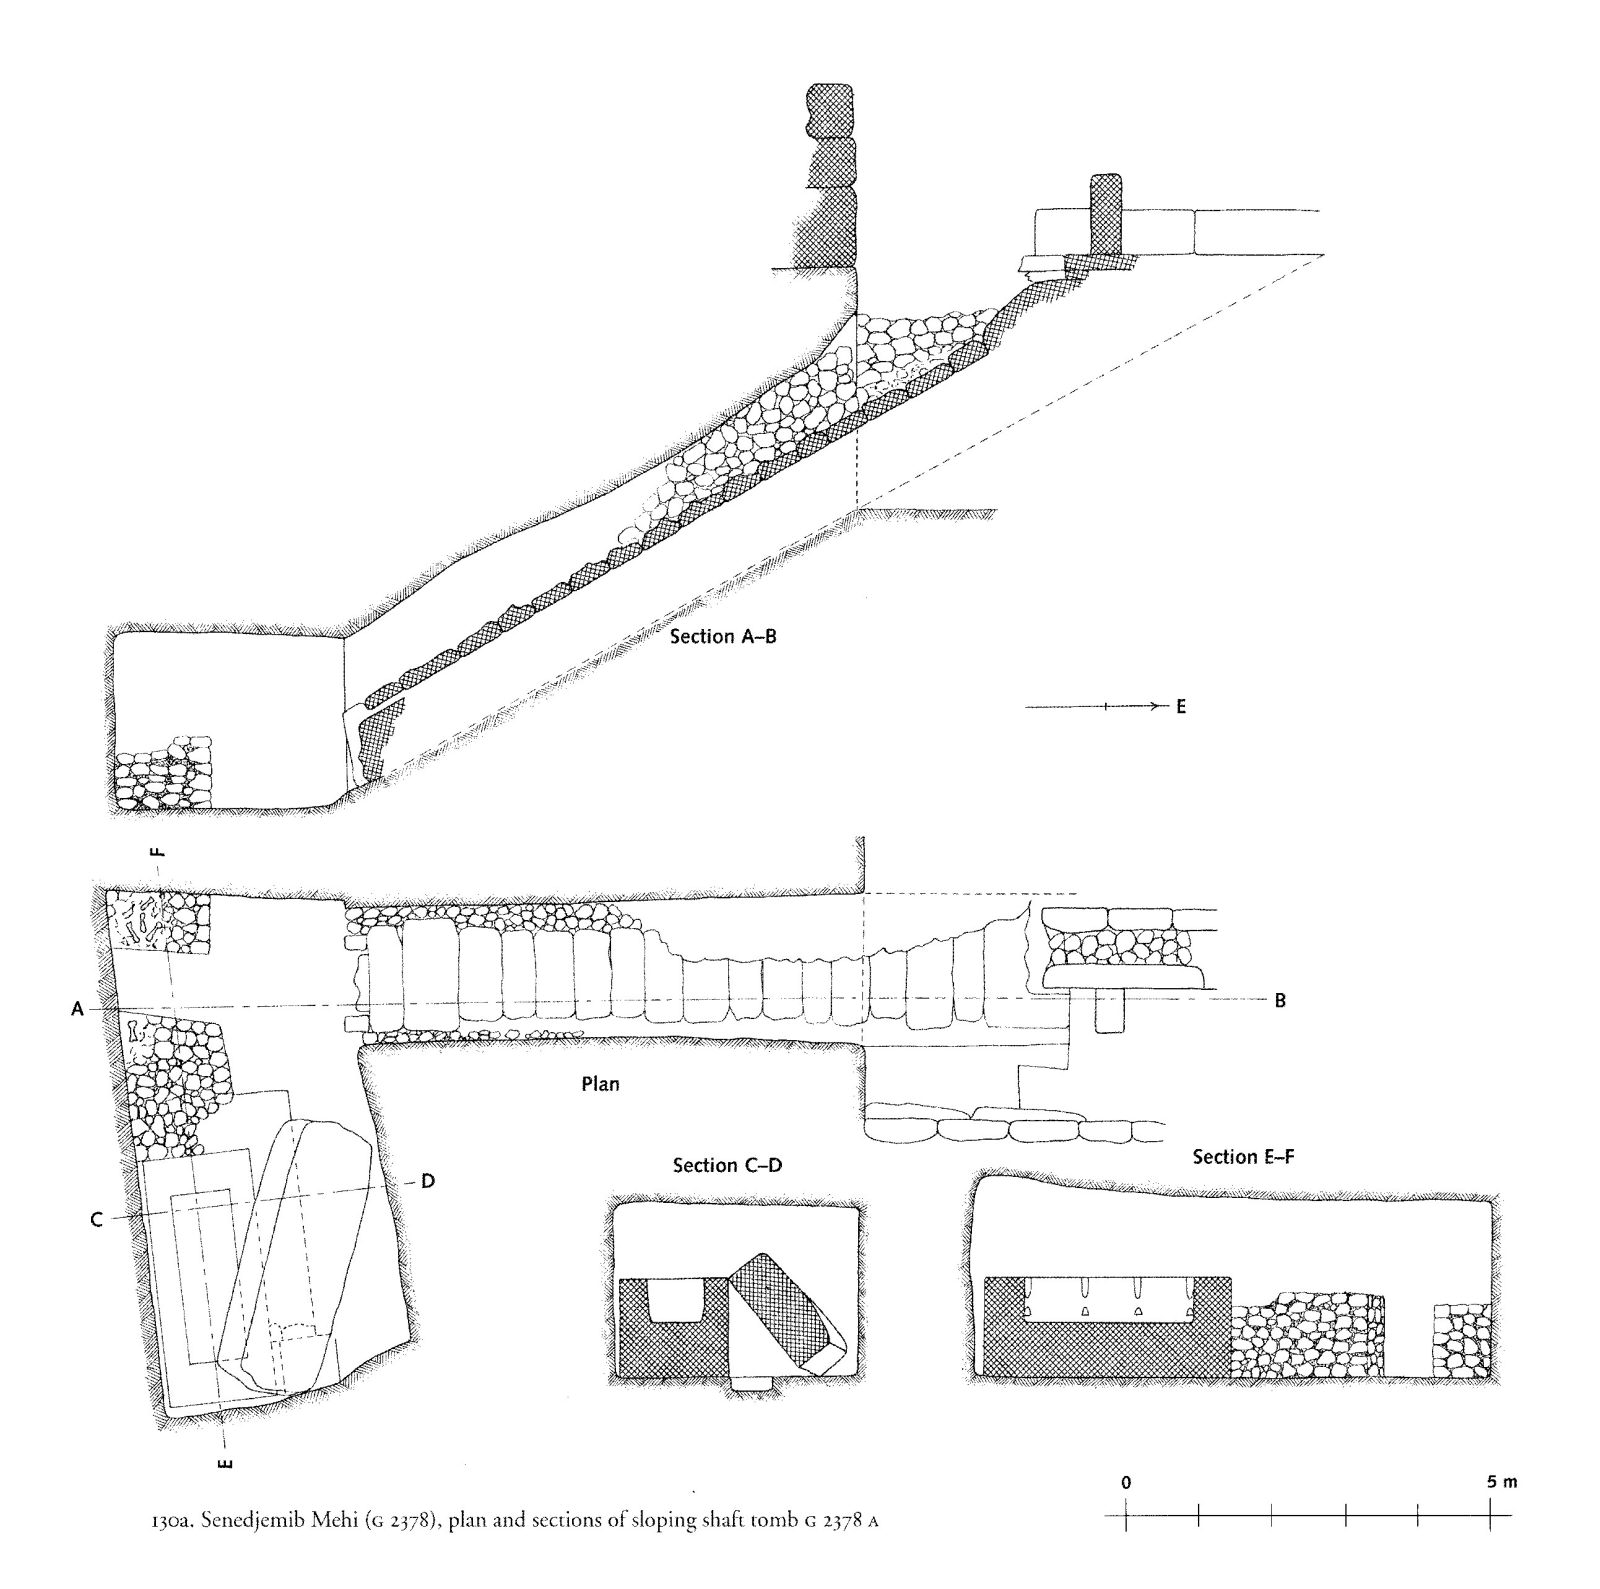 Maps and plans: G 2378, Shaft A